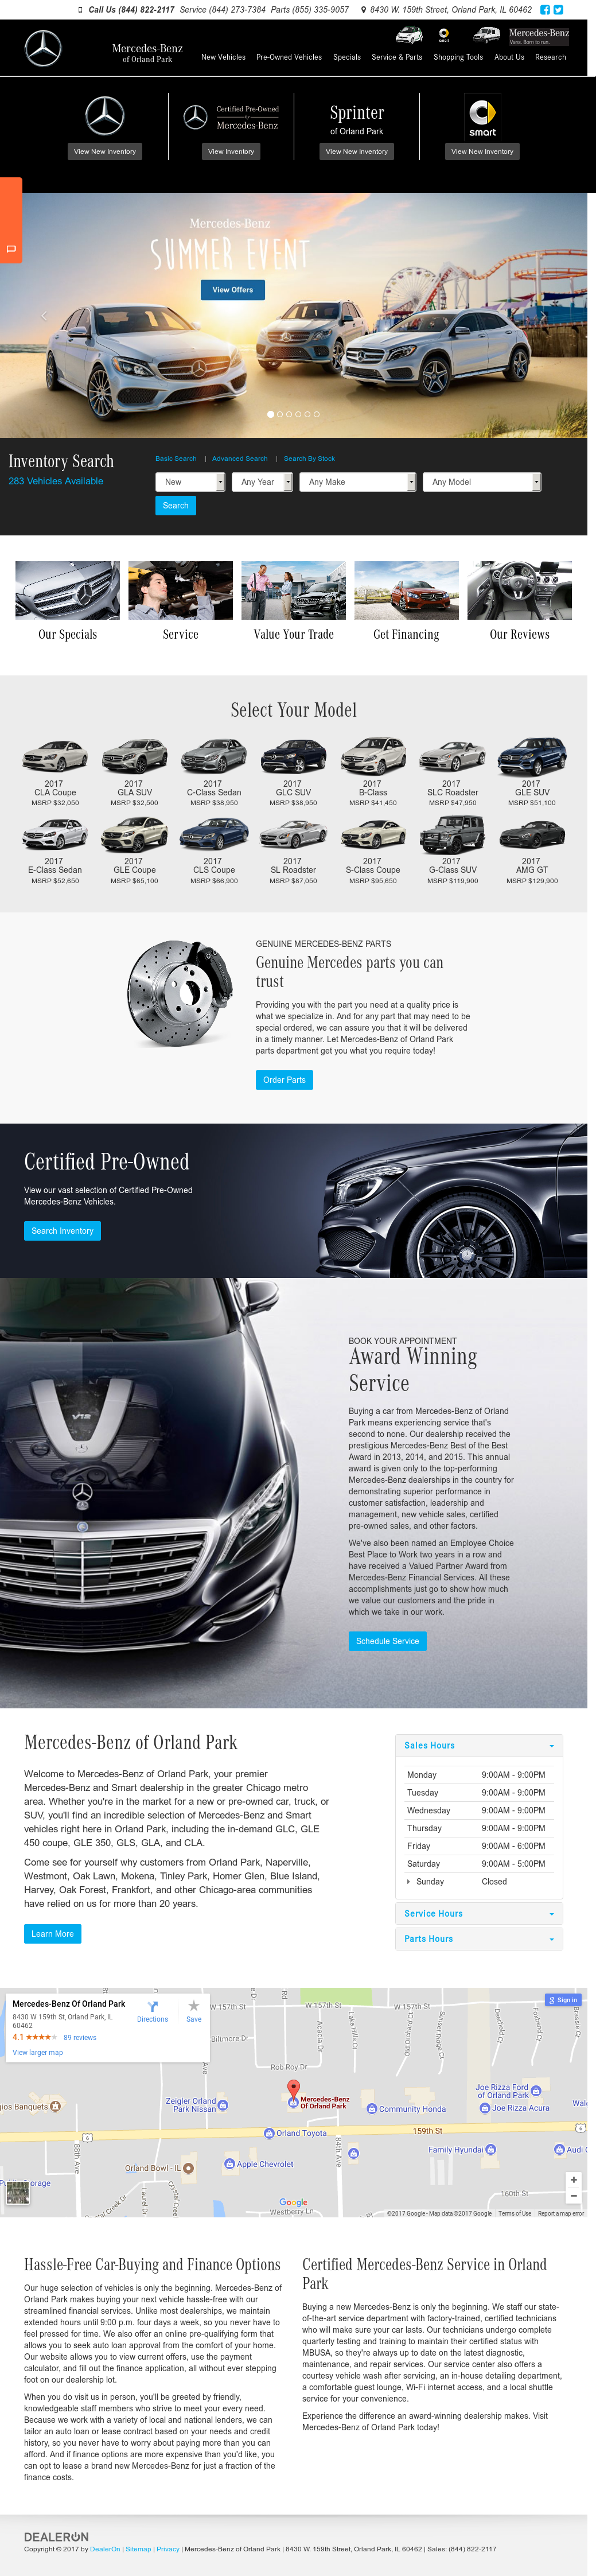 Mercedes Benz Of Orland Park Website History